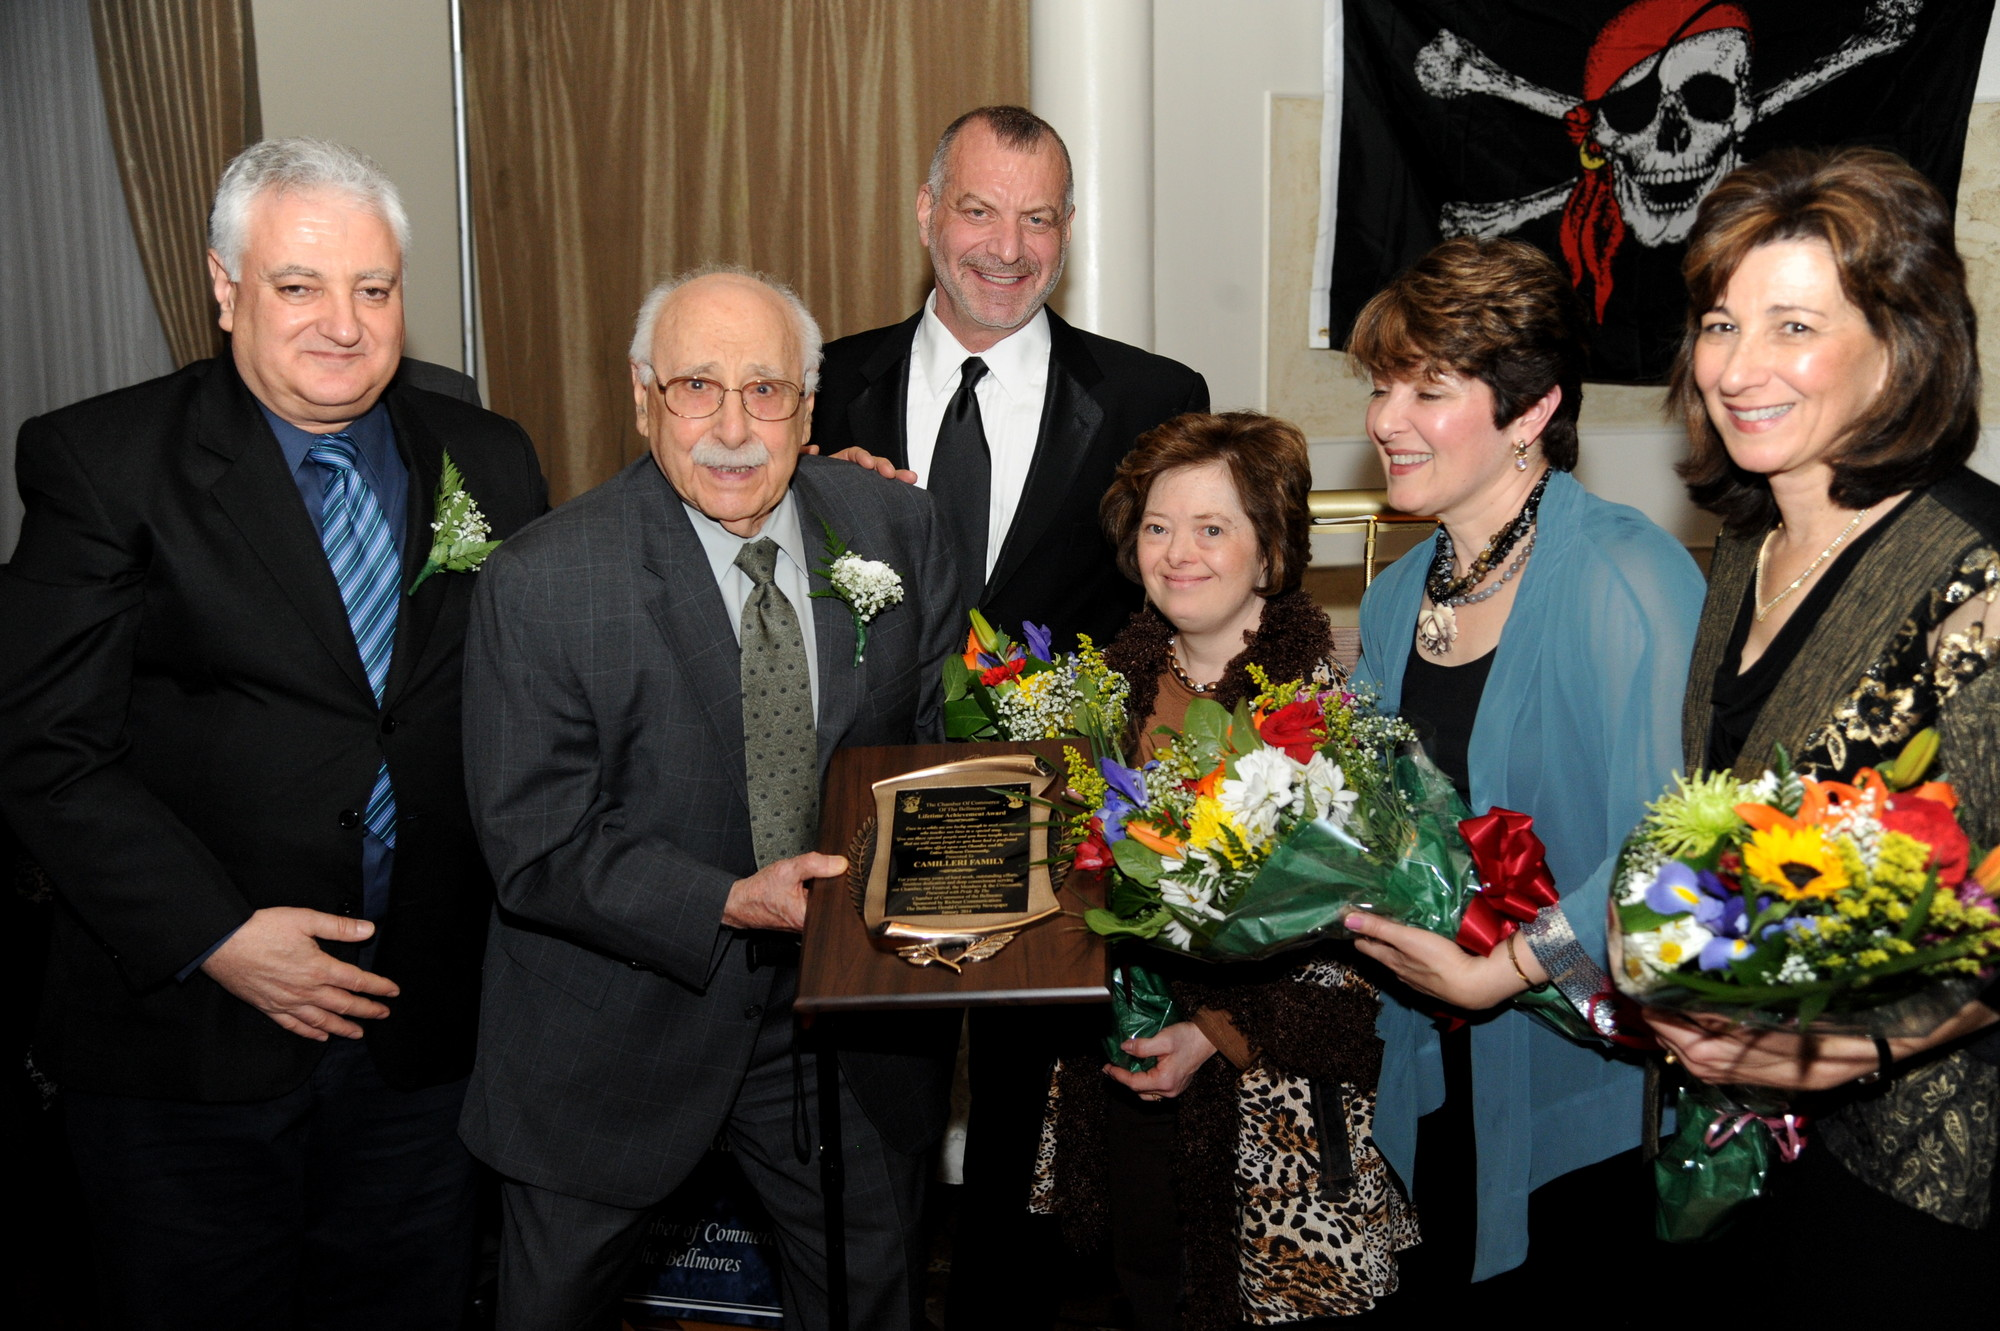 Cliff Richner presented the Lifetime Achievement Award to the Camilleri family, owners of Dear Little Dollies.